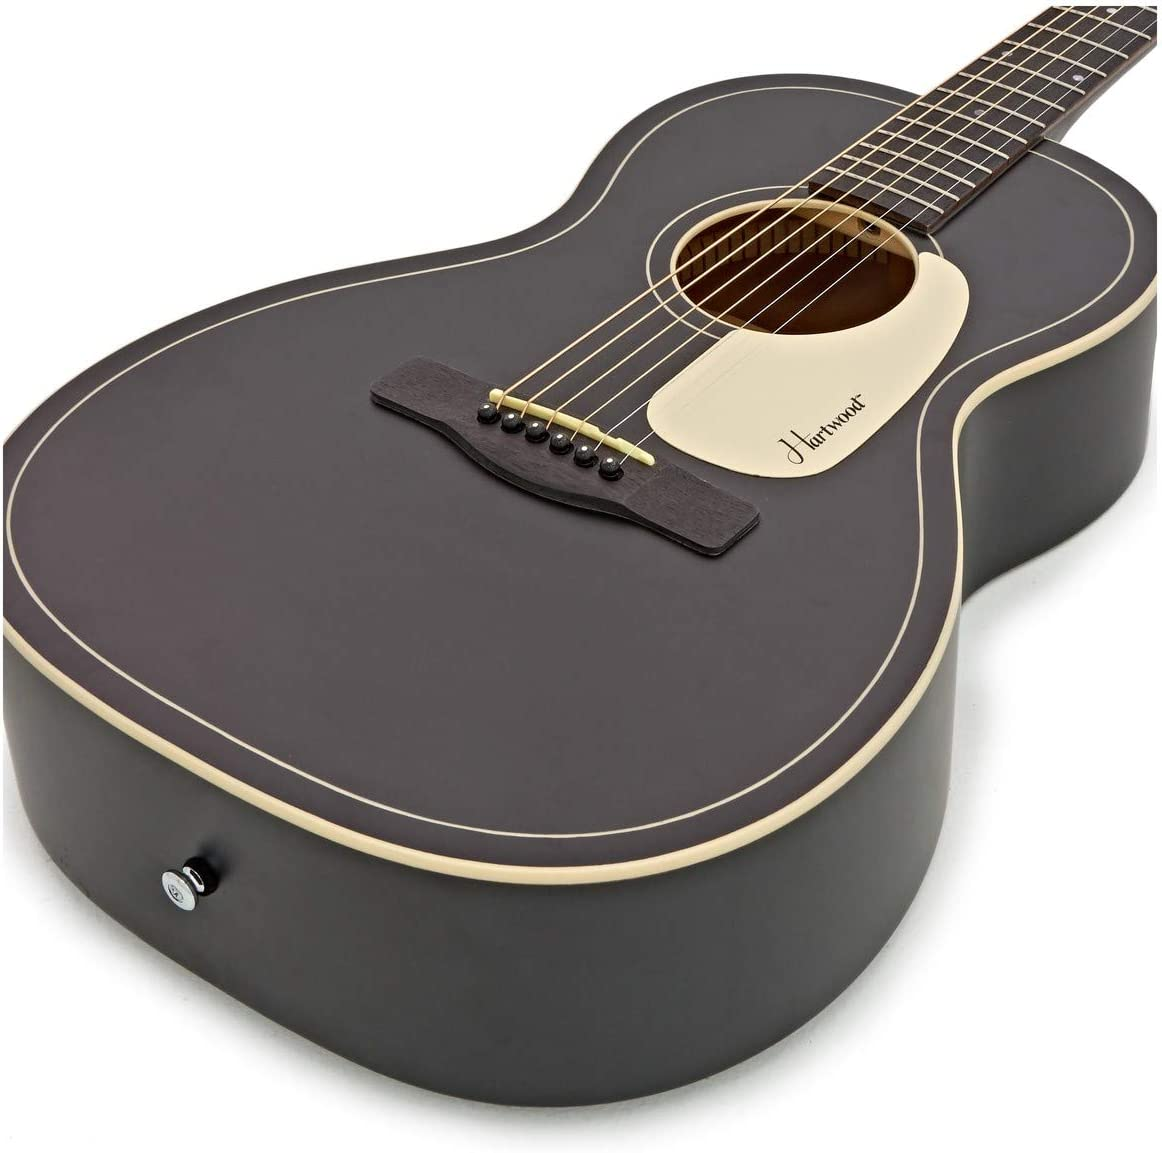 Guitarra acustica Hartwood Villanelle Parlour Satin Black: Amazon ...